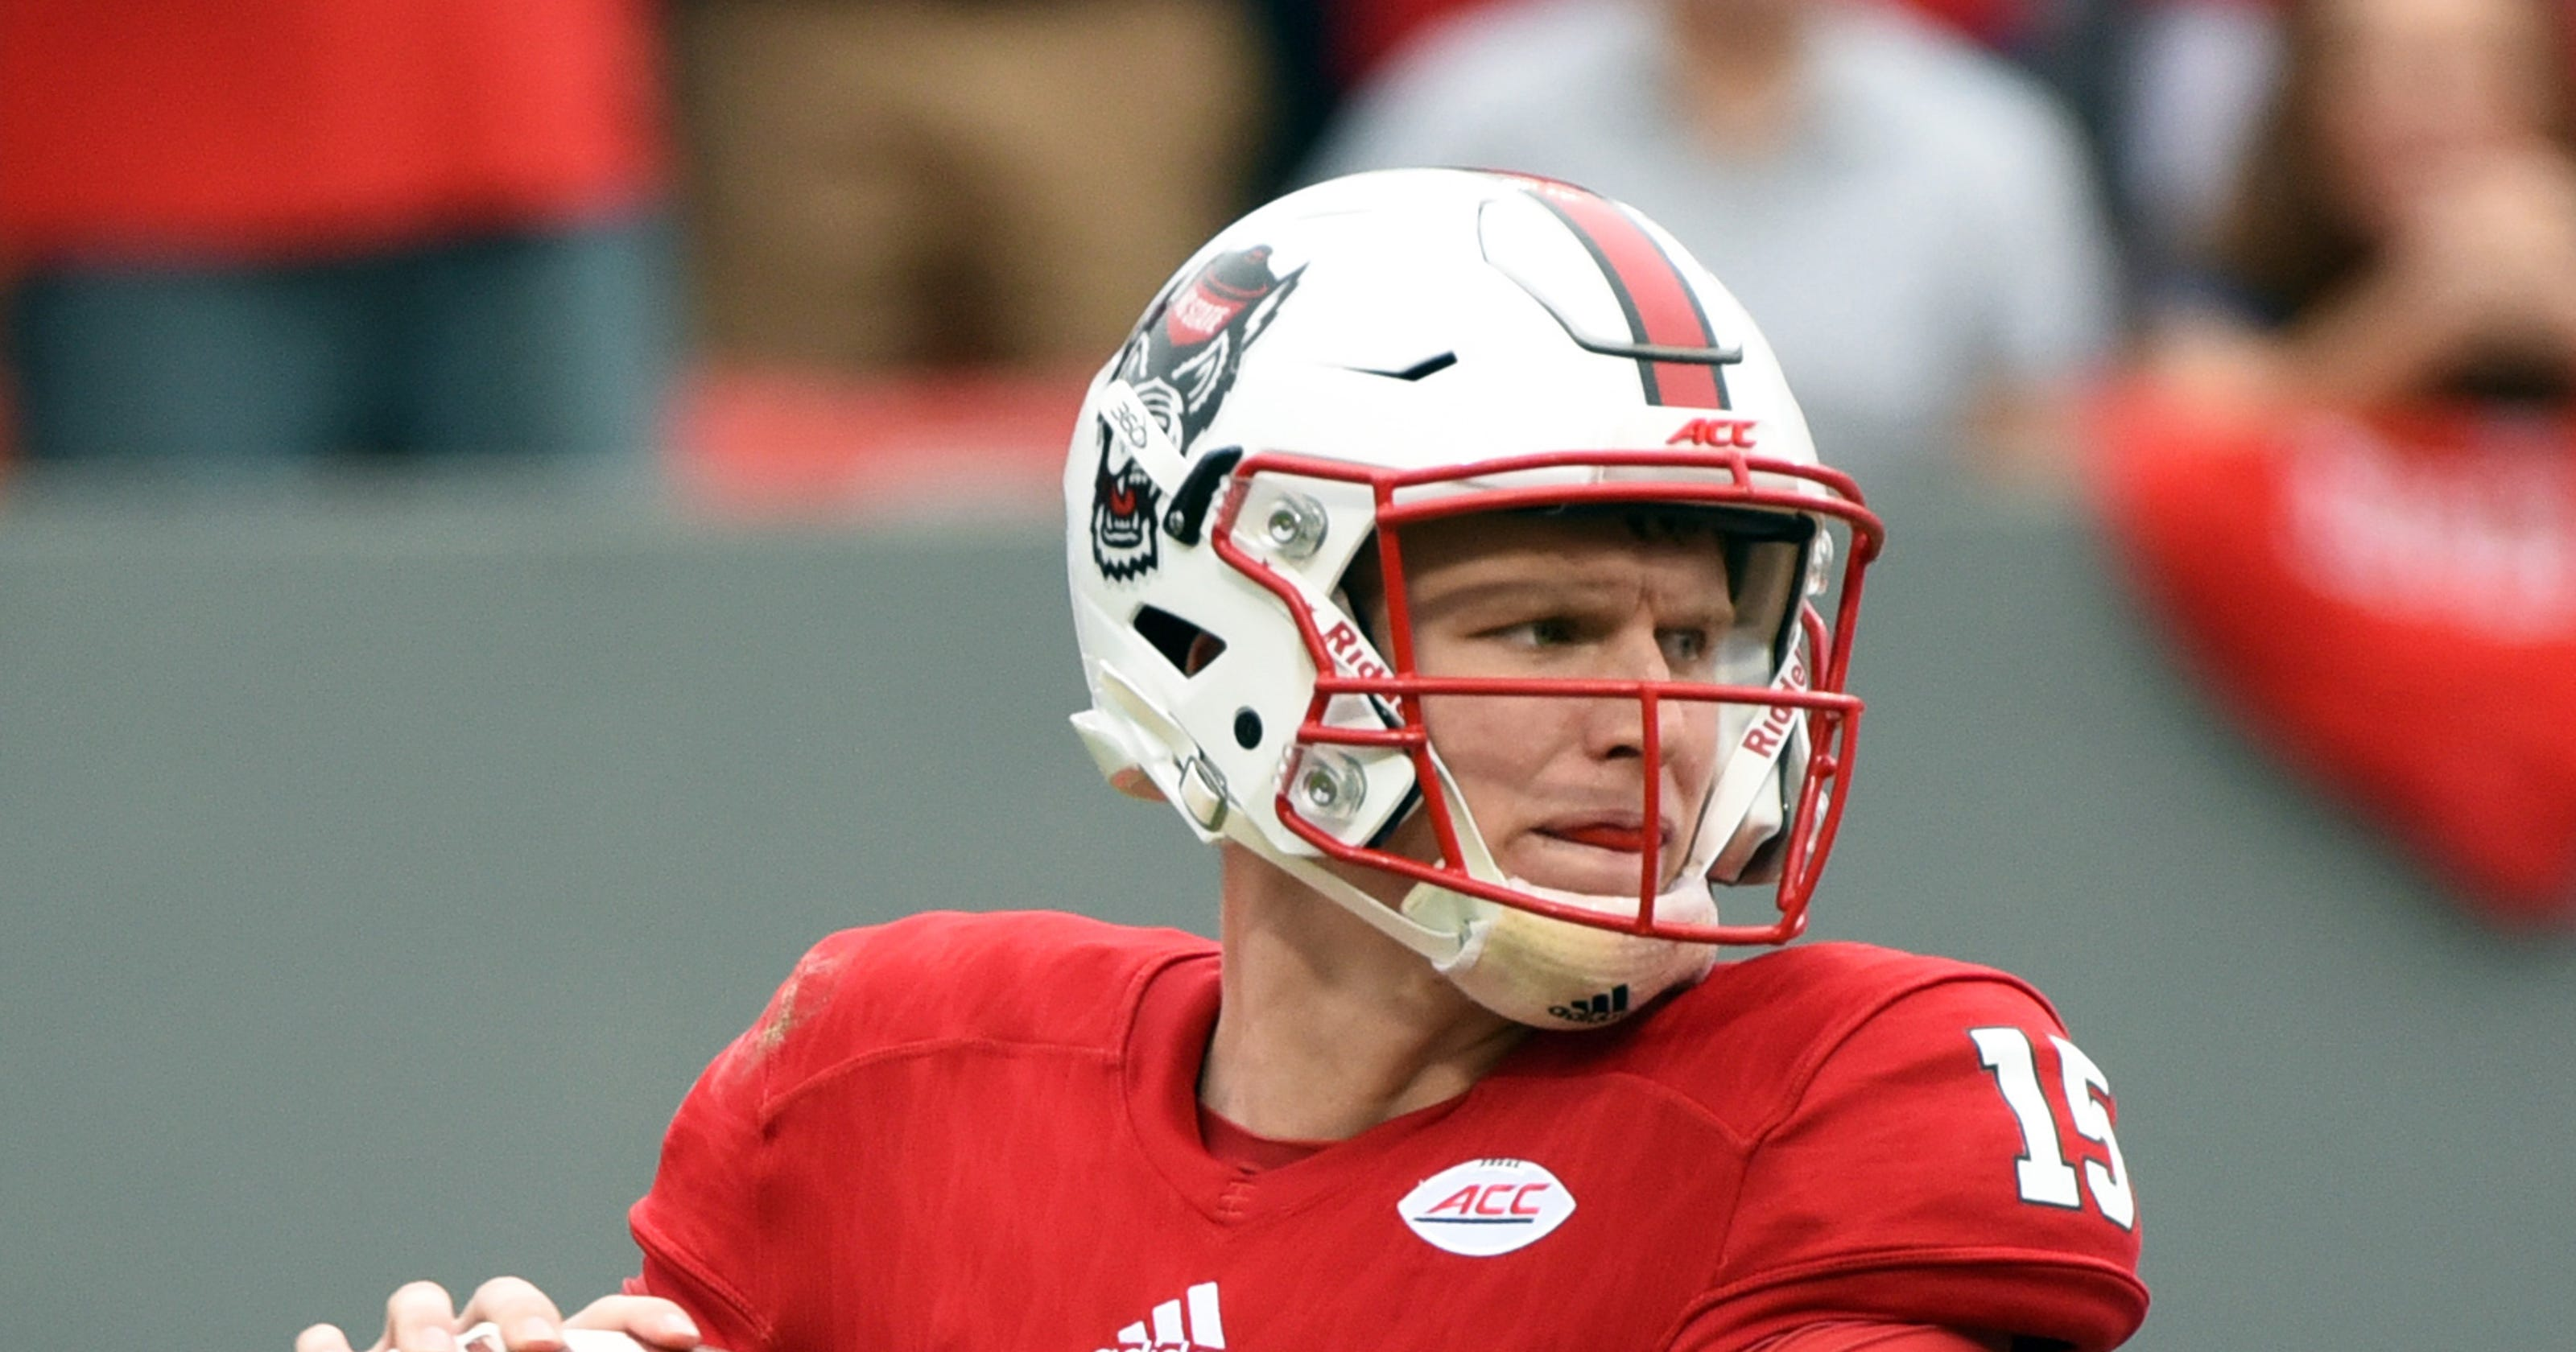 7e7f7ca6 N.C. State senior QB Ryan Finley is ready for what comes next